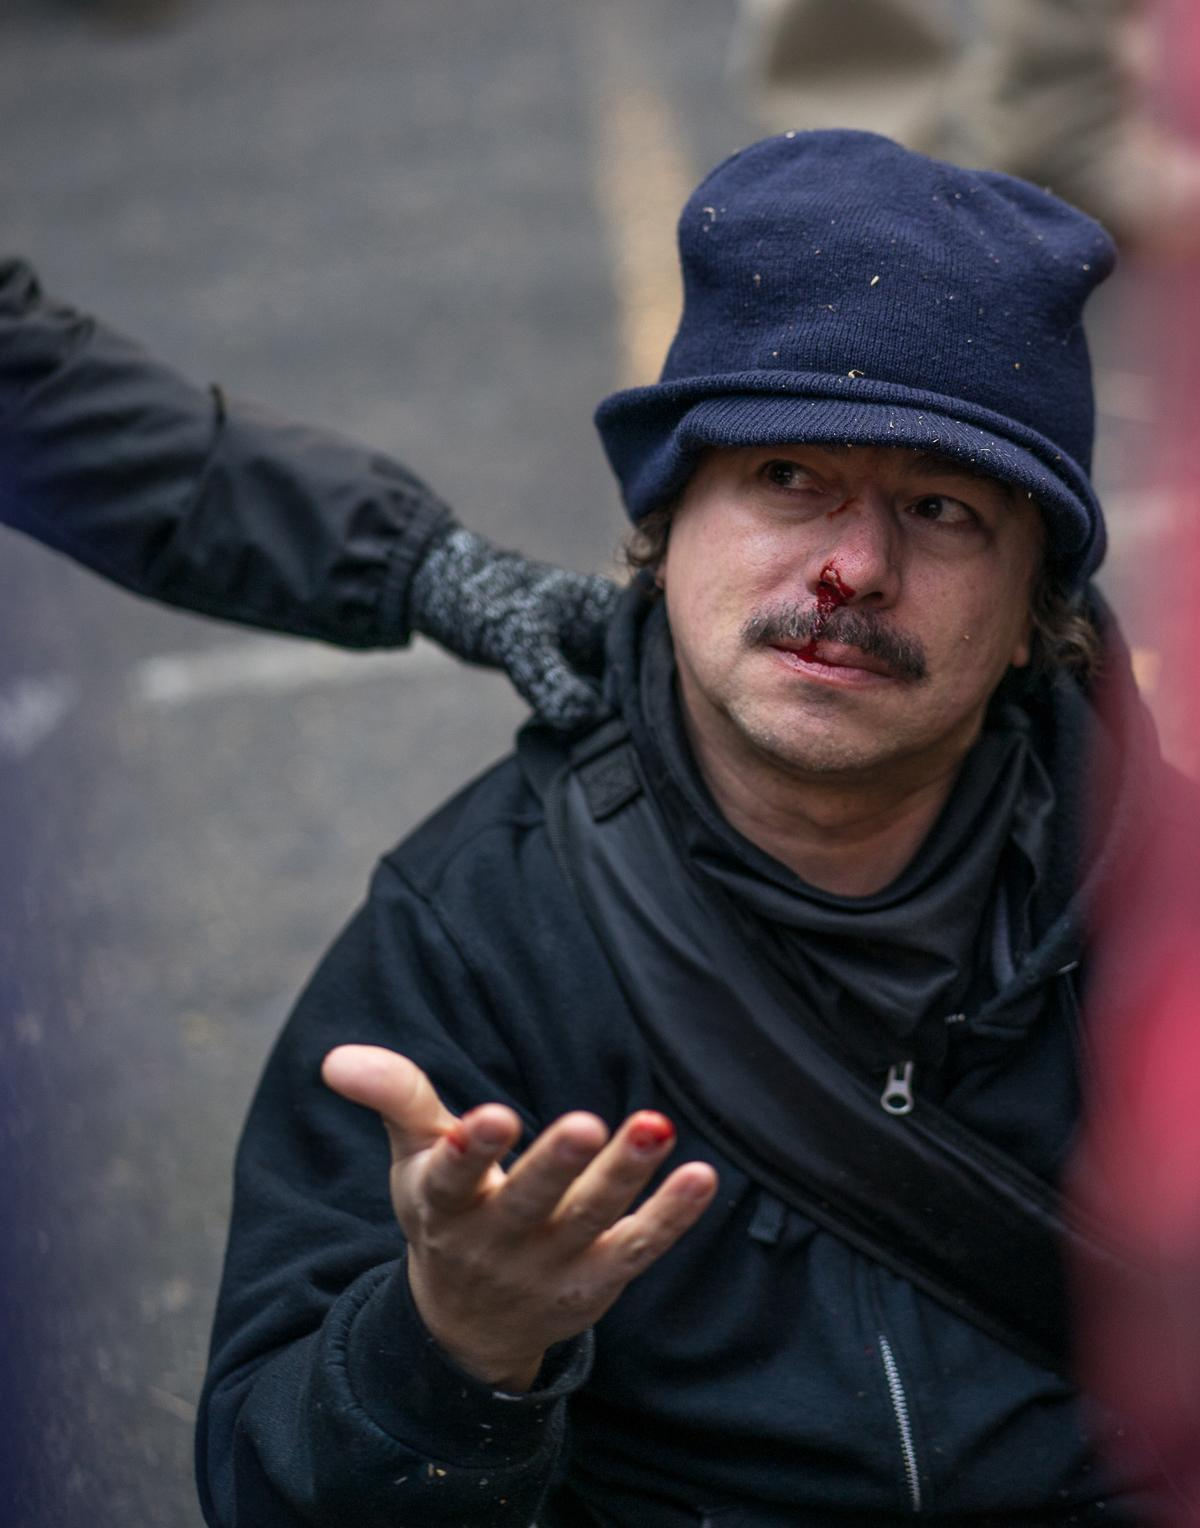 A man rests on the ground after being knocked over by Tusitala Toese, a member of Patriot Prayer who was later detained by the police. A demonstration by the alt-right, conservative group Patriot Prayer began at 1 p.m. in Portland, Ore., on Saturday, December 9, to protest the homicide acquittal of Jose Ines Garcia Zarate, the undocumented immigrant who accidentally shot and killed Kate Steinle in San Francisco. The demonstration attracted a large crowd of counter-protesters and members of Antifa, and heated exchanges and several scuffles occurred between the two groups throughout the afternoon until the event's conclusion at 4 p.m., with at least one member of Patriot Prayer being detained by police and several demonstrators being injured. The rally began in Portland's Terry Schrunk Plaza and developed into a march along the Tom McCall Waterfront Park before ending at Terry Schrunk Plaza again. Photo by Kit MacAvoy, Oregon News Lab